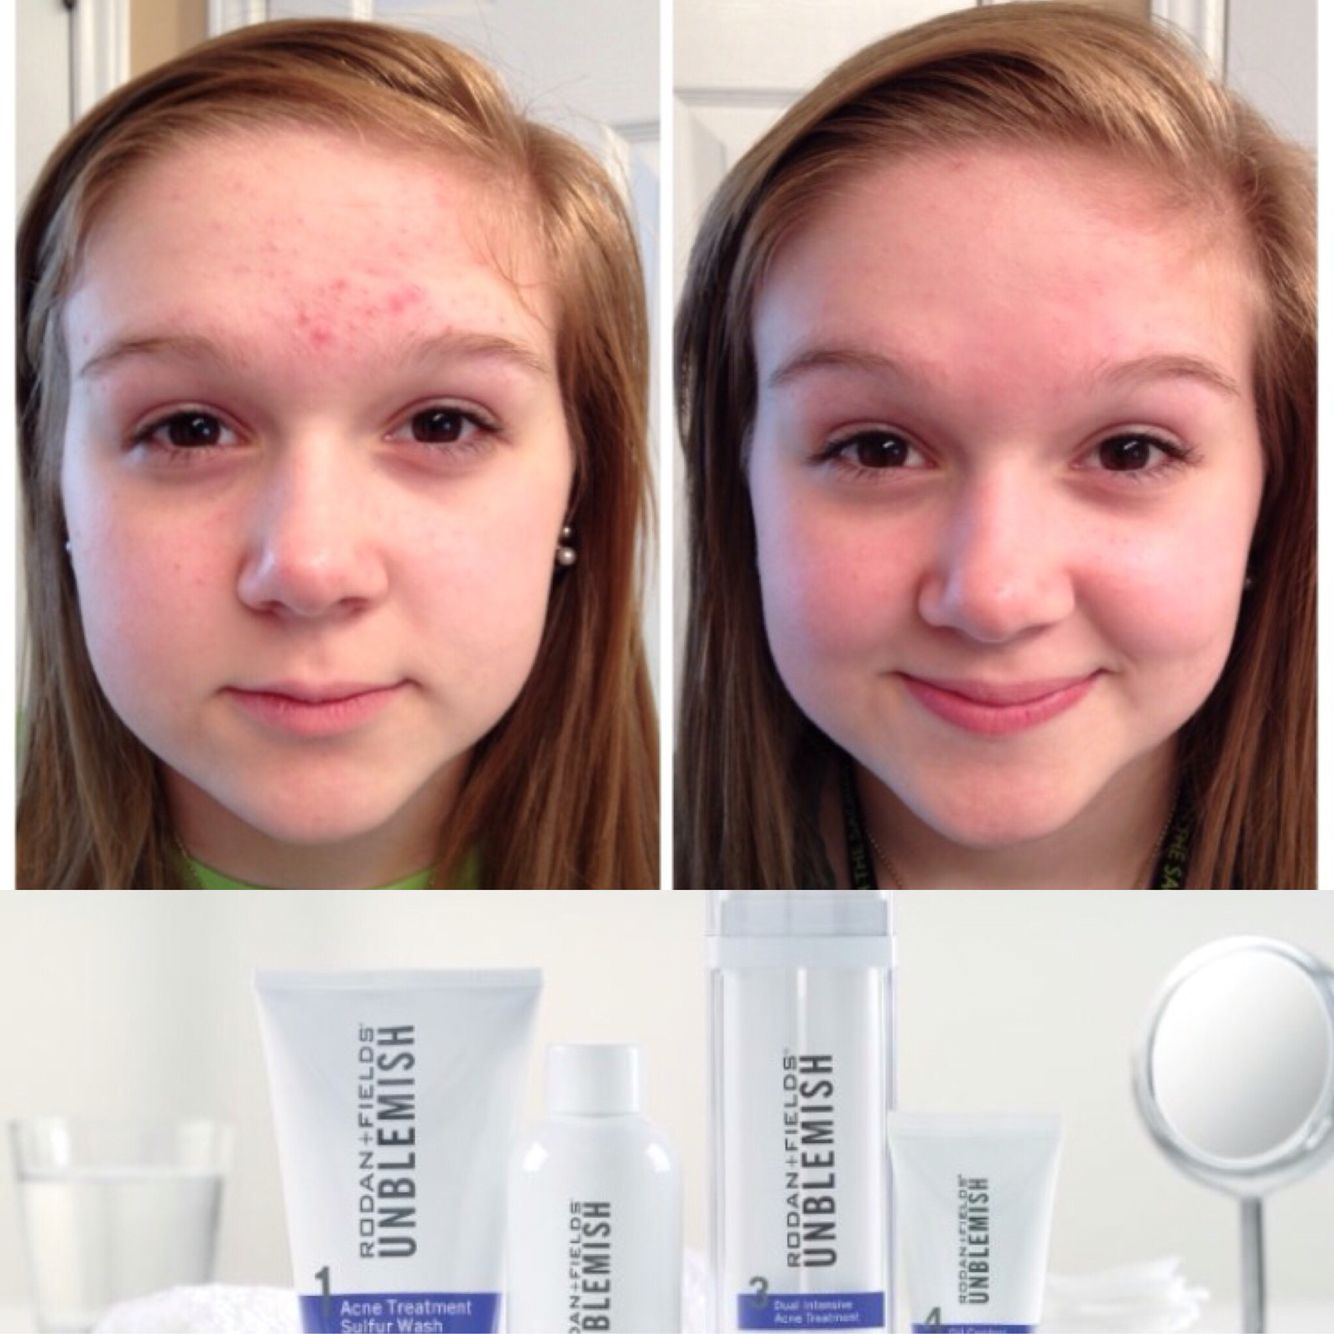 Acne Care For Kids Unblemish By Rodan And Fields 1 Acne Regimen Teenage Acne Tween Best Acne Products